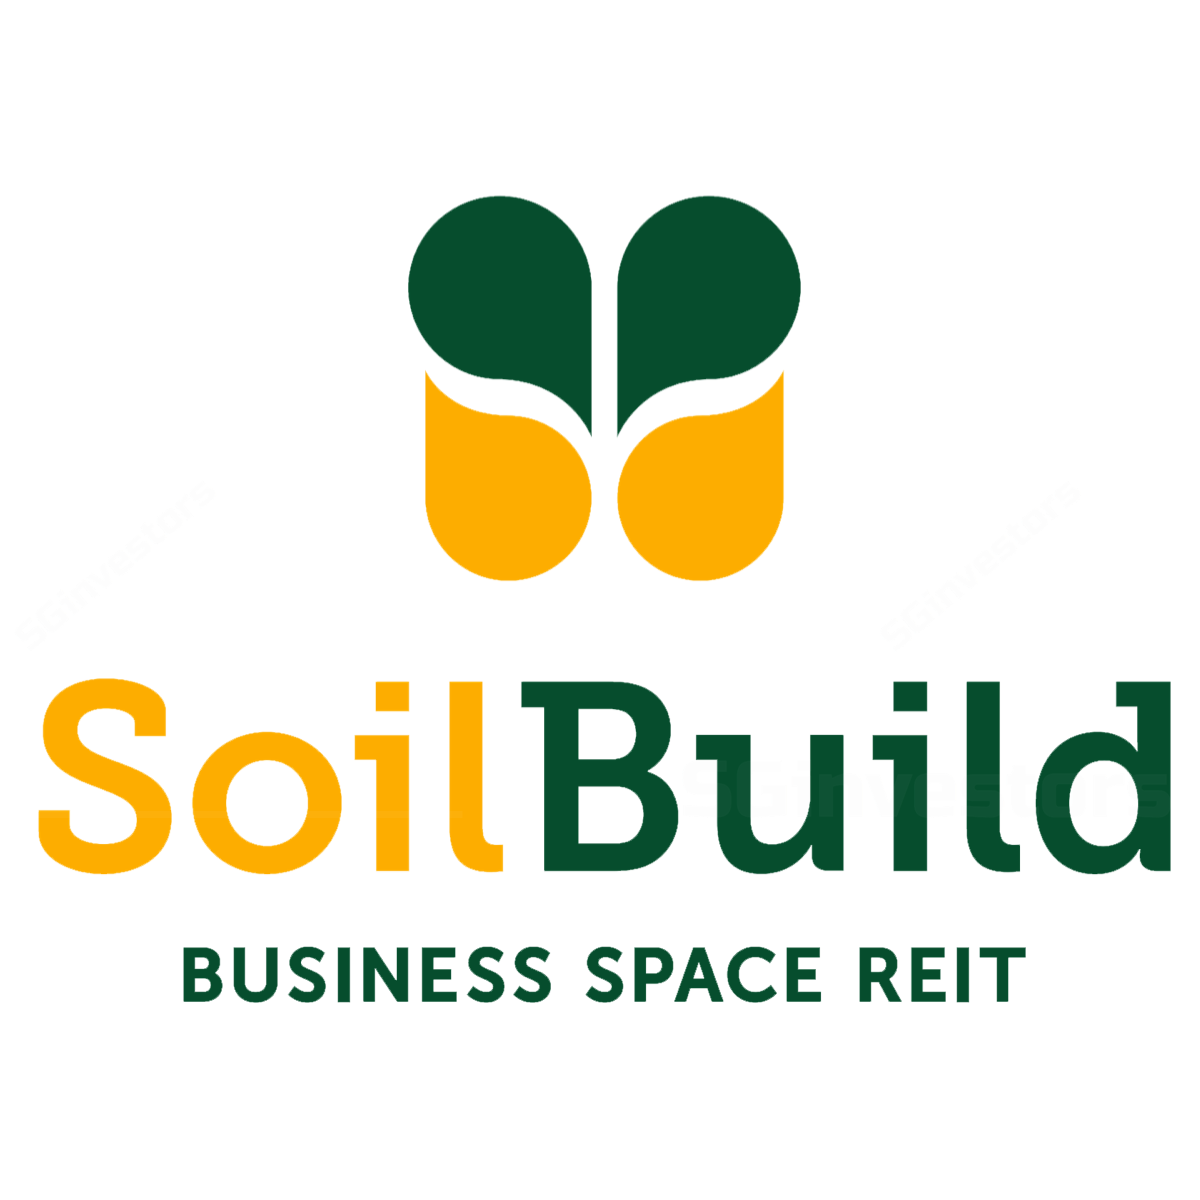 Soilbuild Business Space REIT - Phillip Securities 2017-09-19: Master Leasee NK Ingredients Defaults